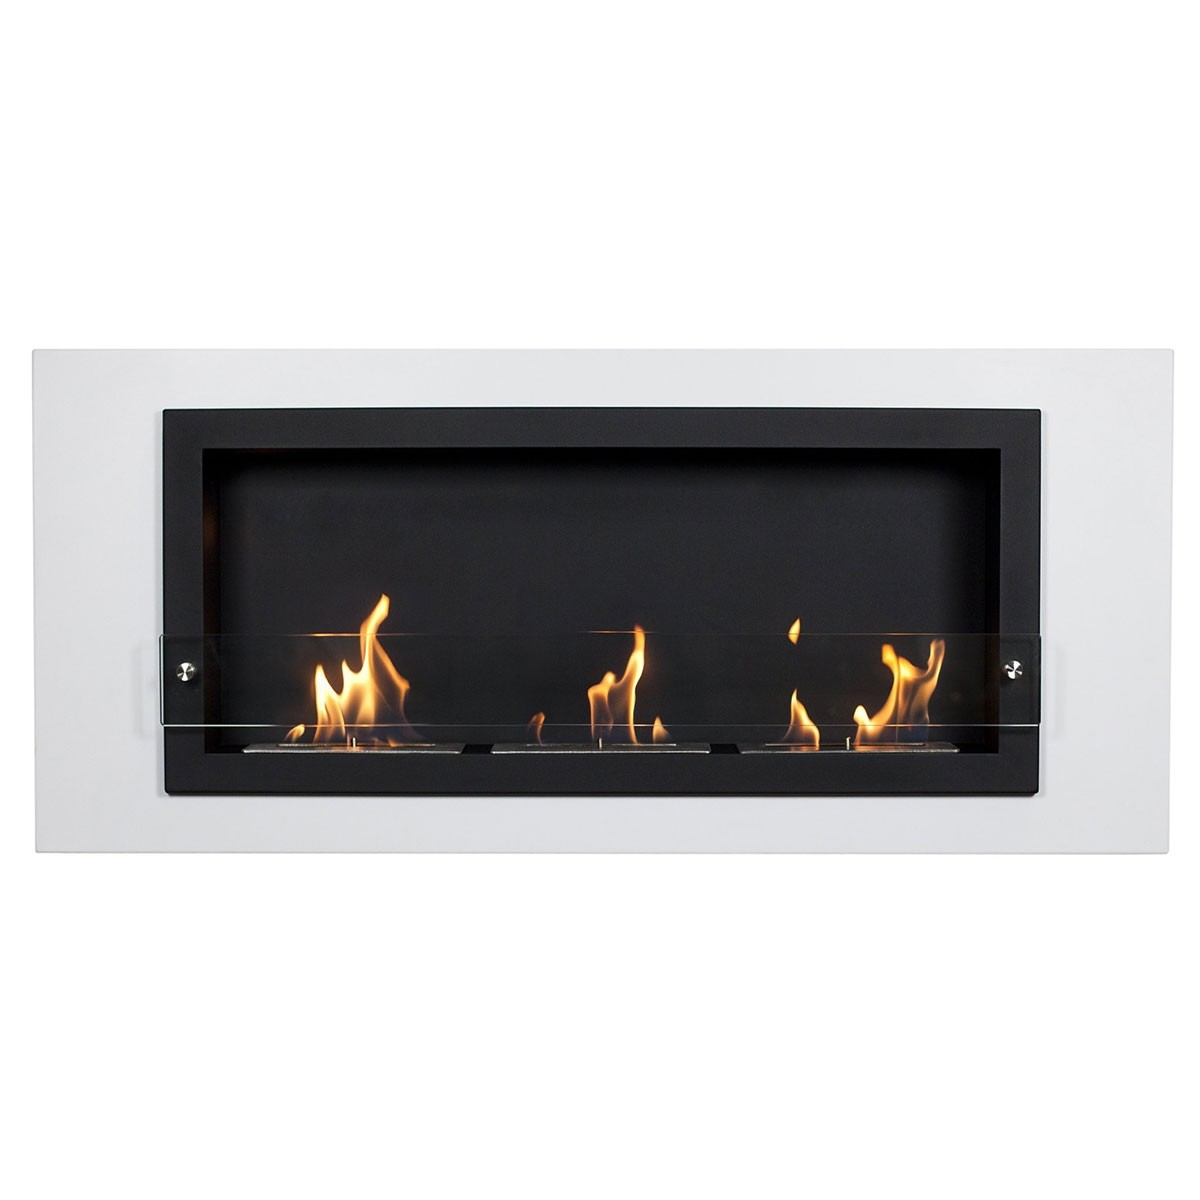 Camino Bianco Wall Fireplace